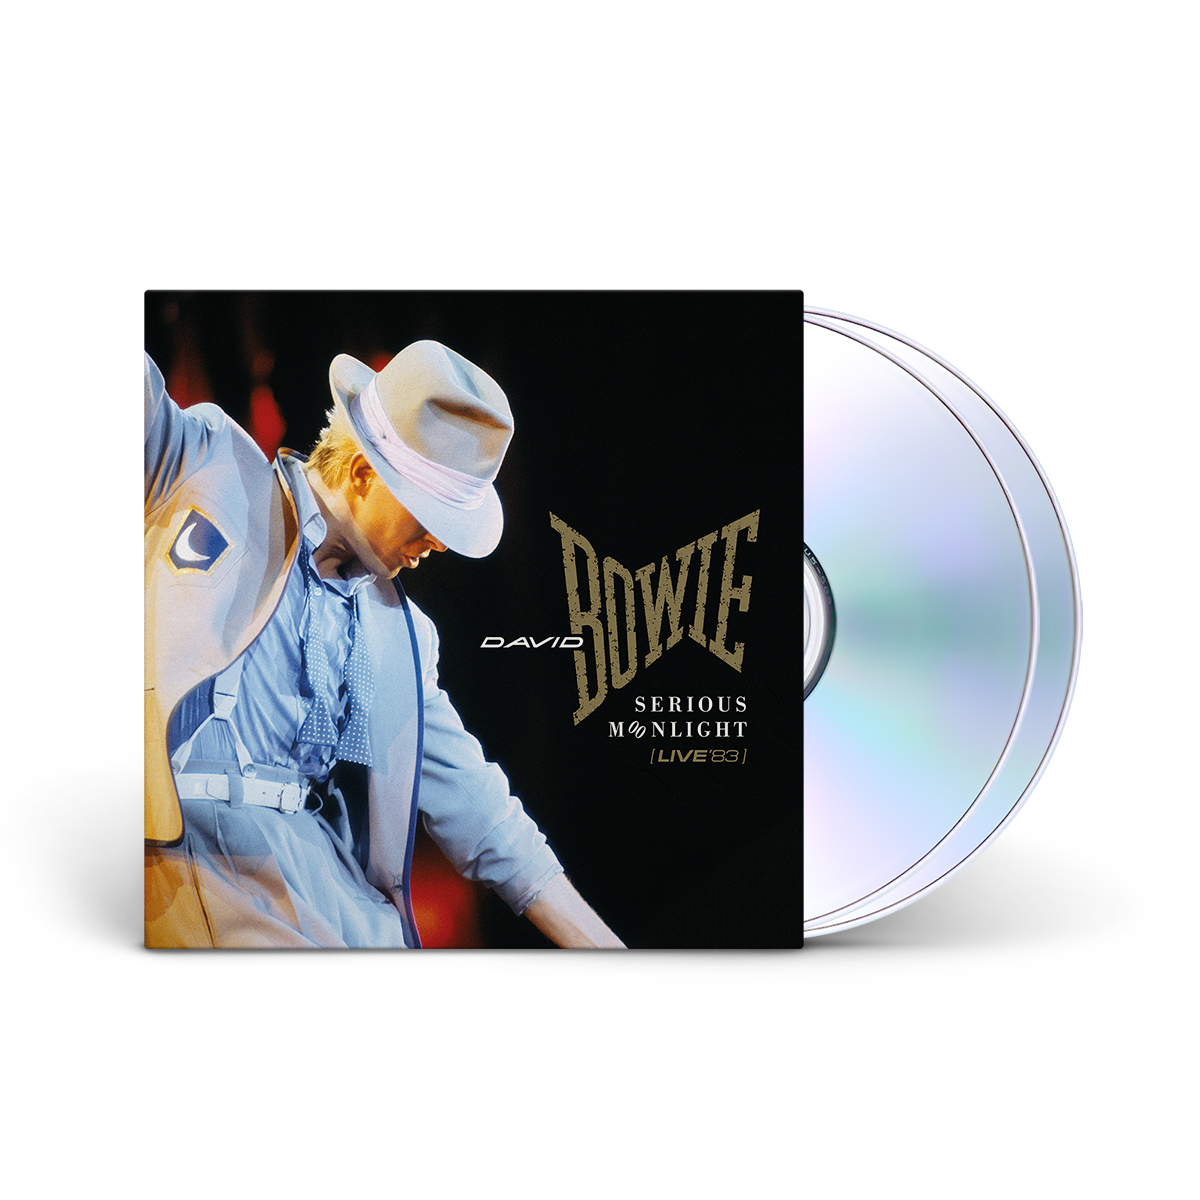 David Bowie - Serious Moonlight (Live '83) [2018 Remastered Version] 2 CD